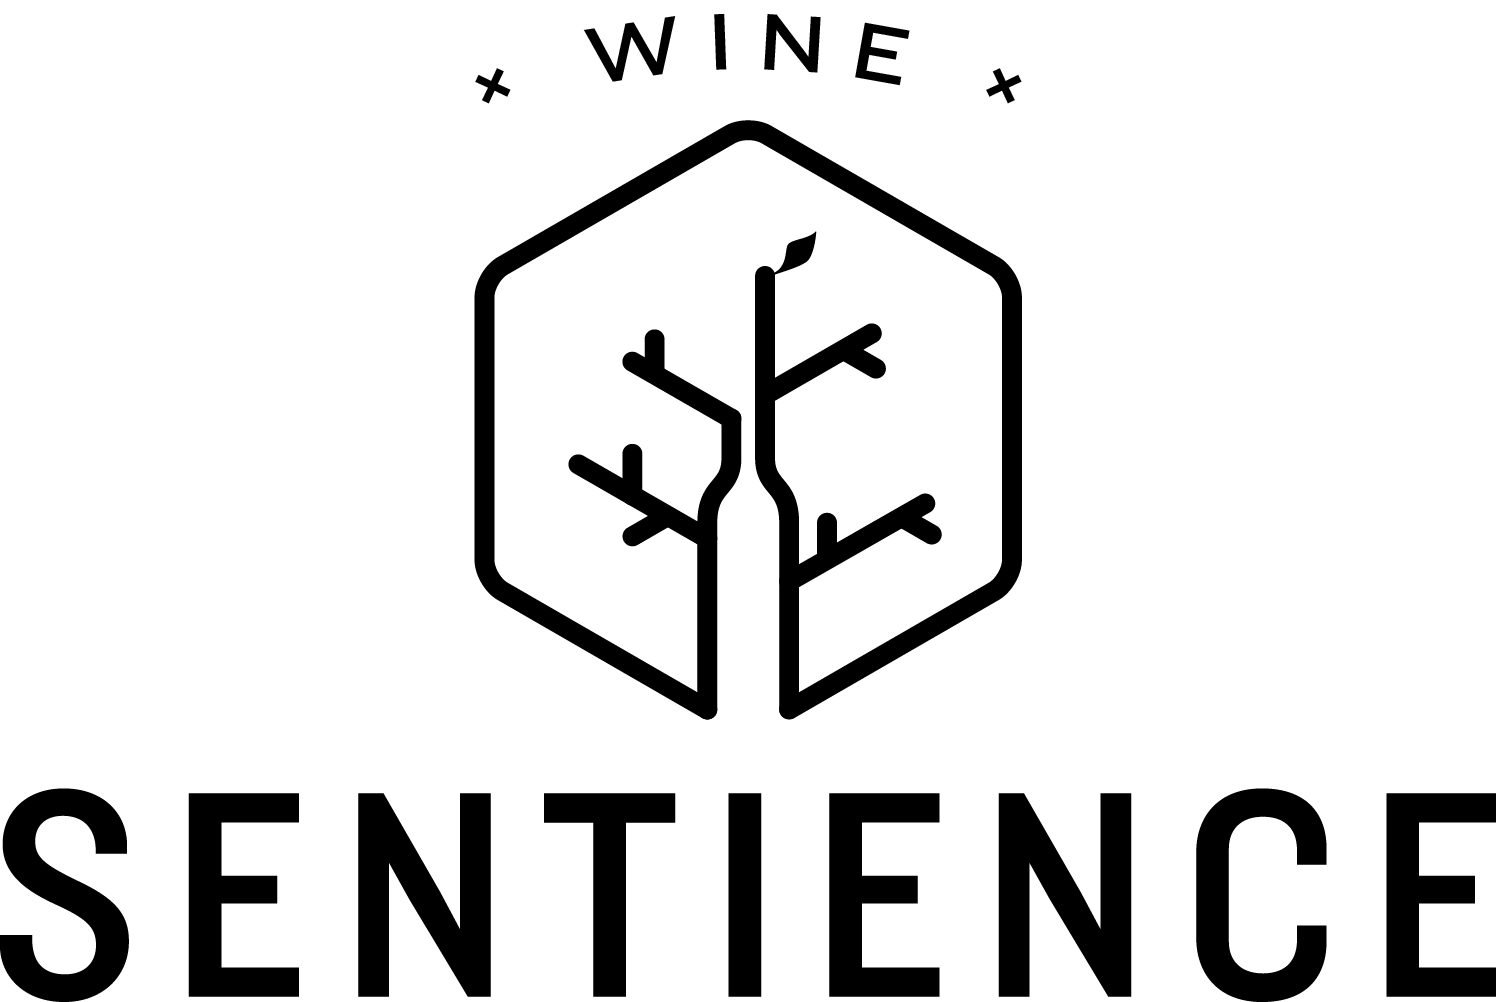 wine sentience final logo.png